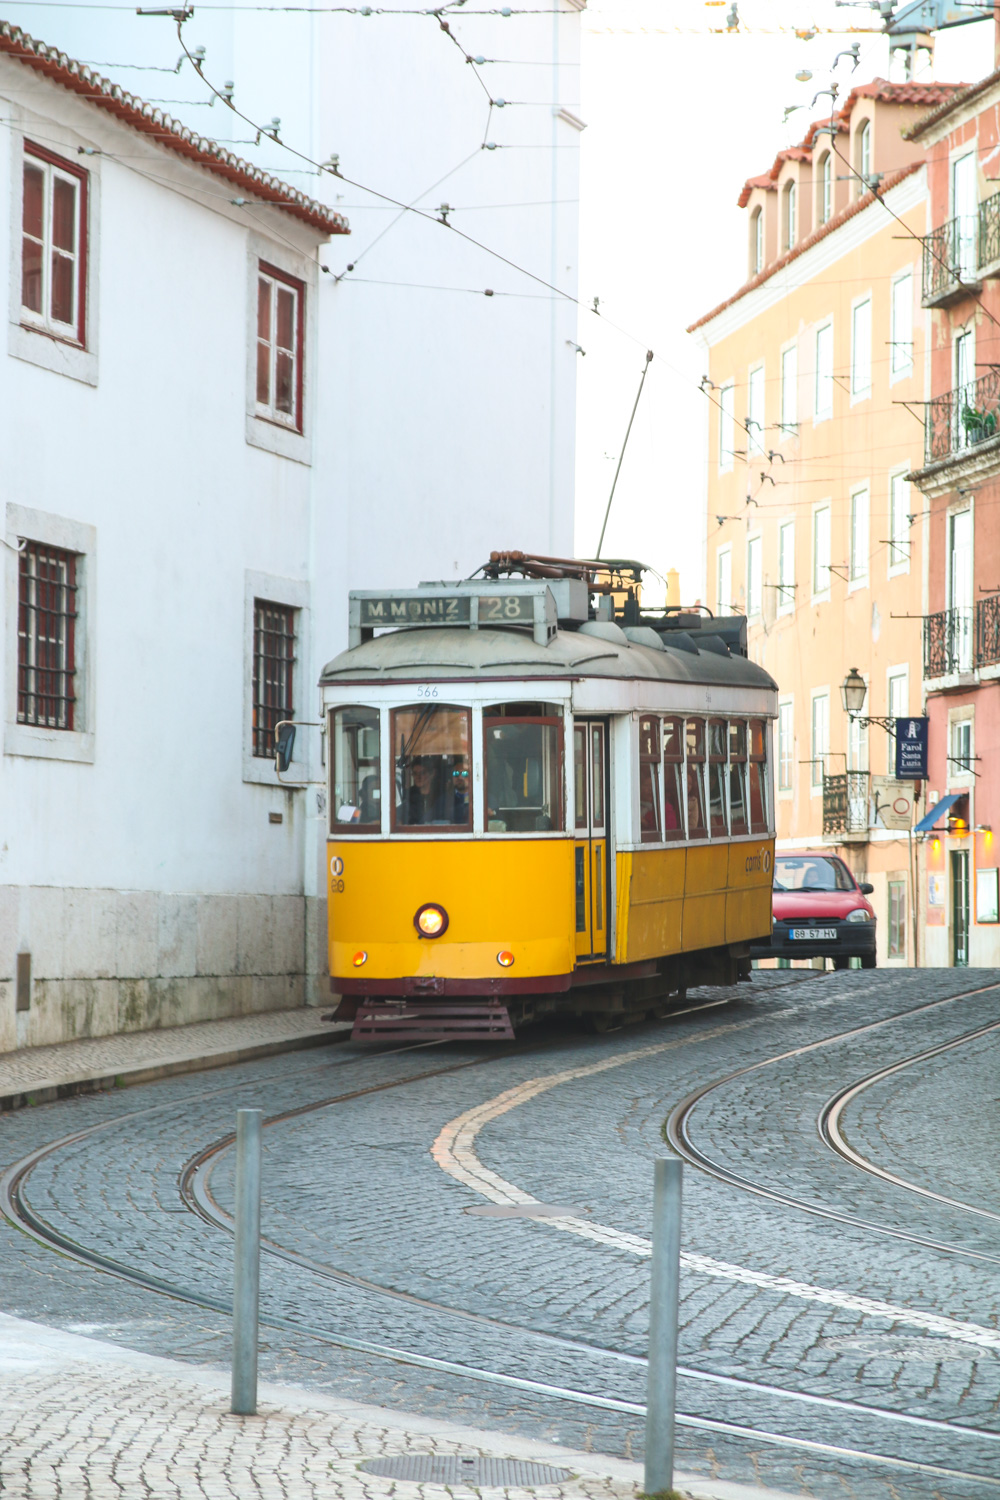 Tram 28 in Alfama, Lisbon, Portugal